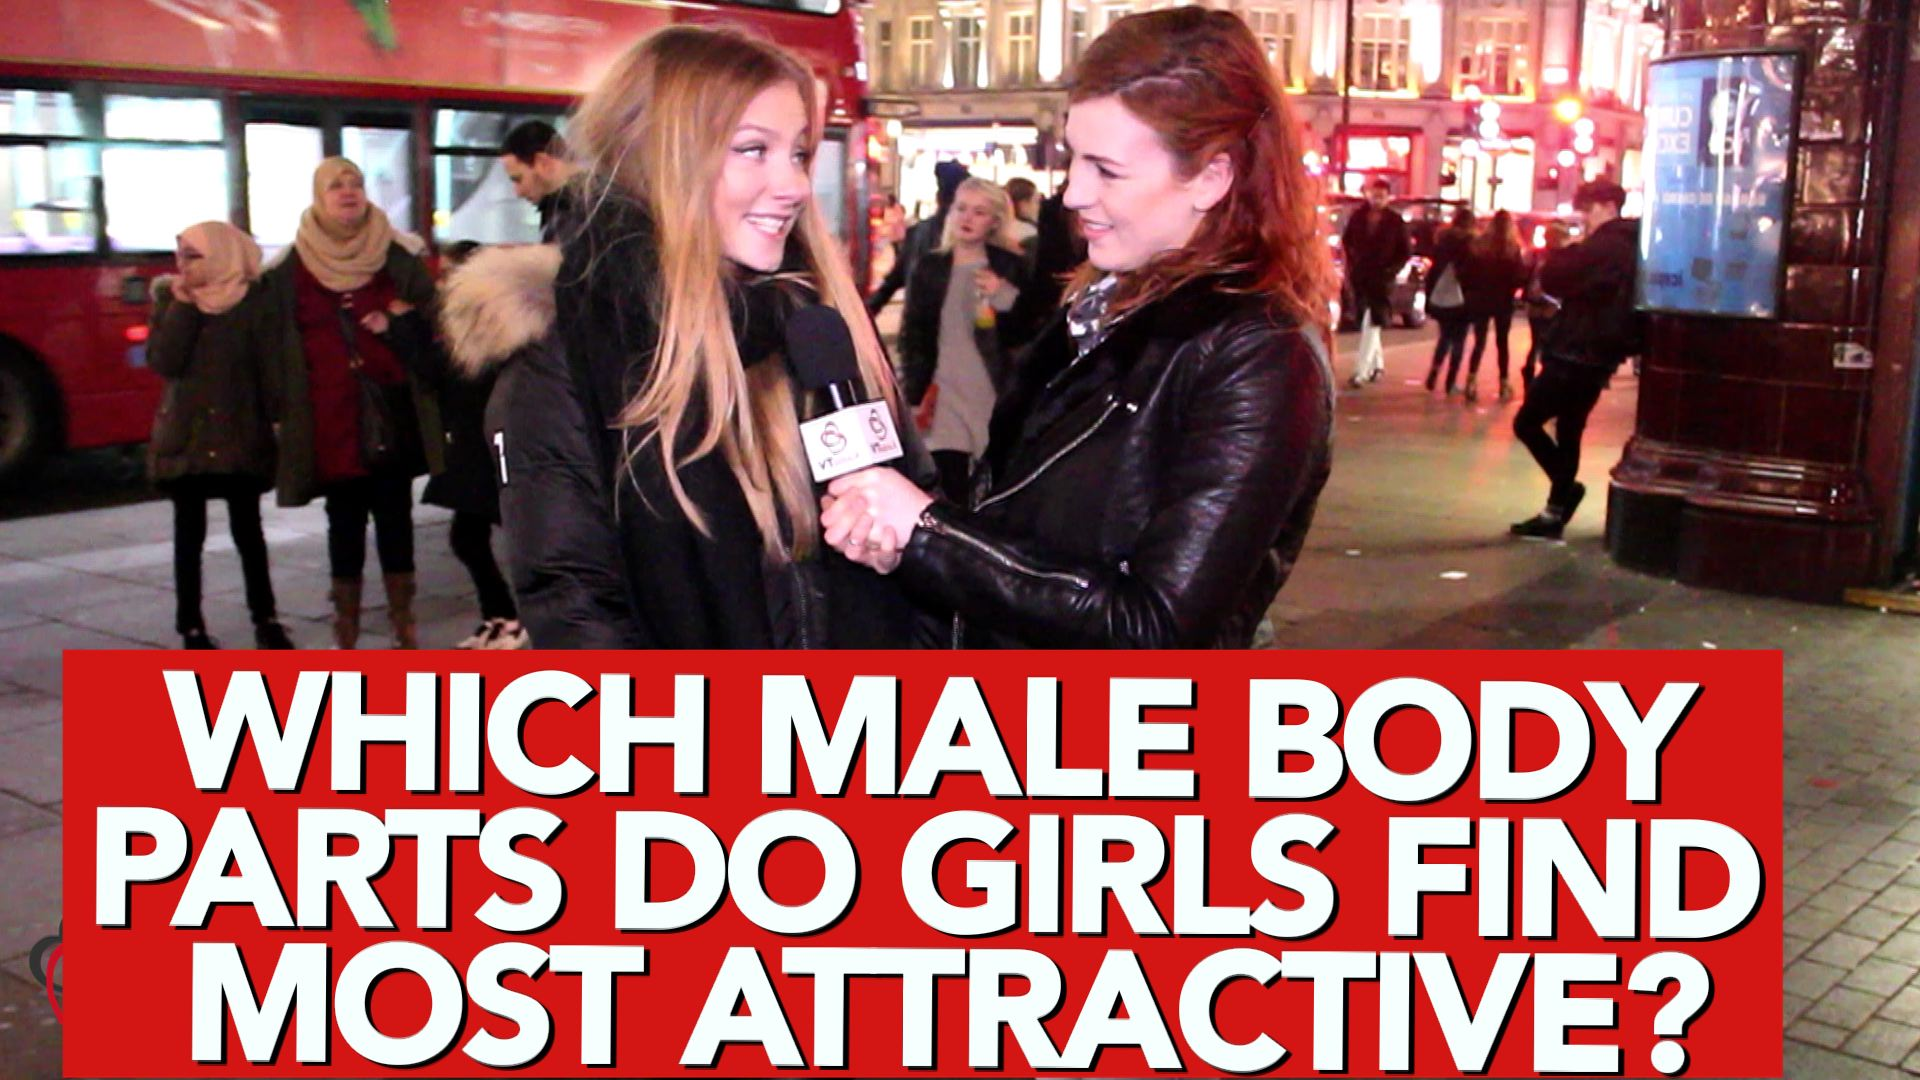 Which male body parts do girls find most attractive